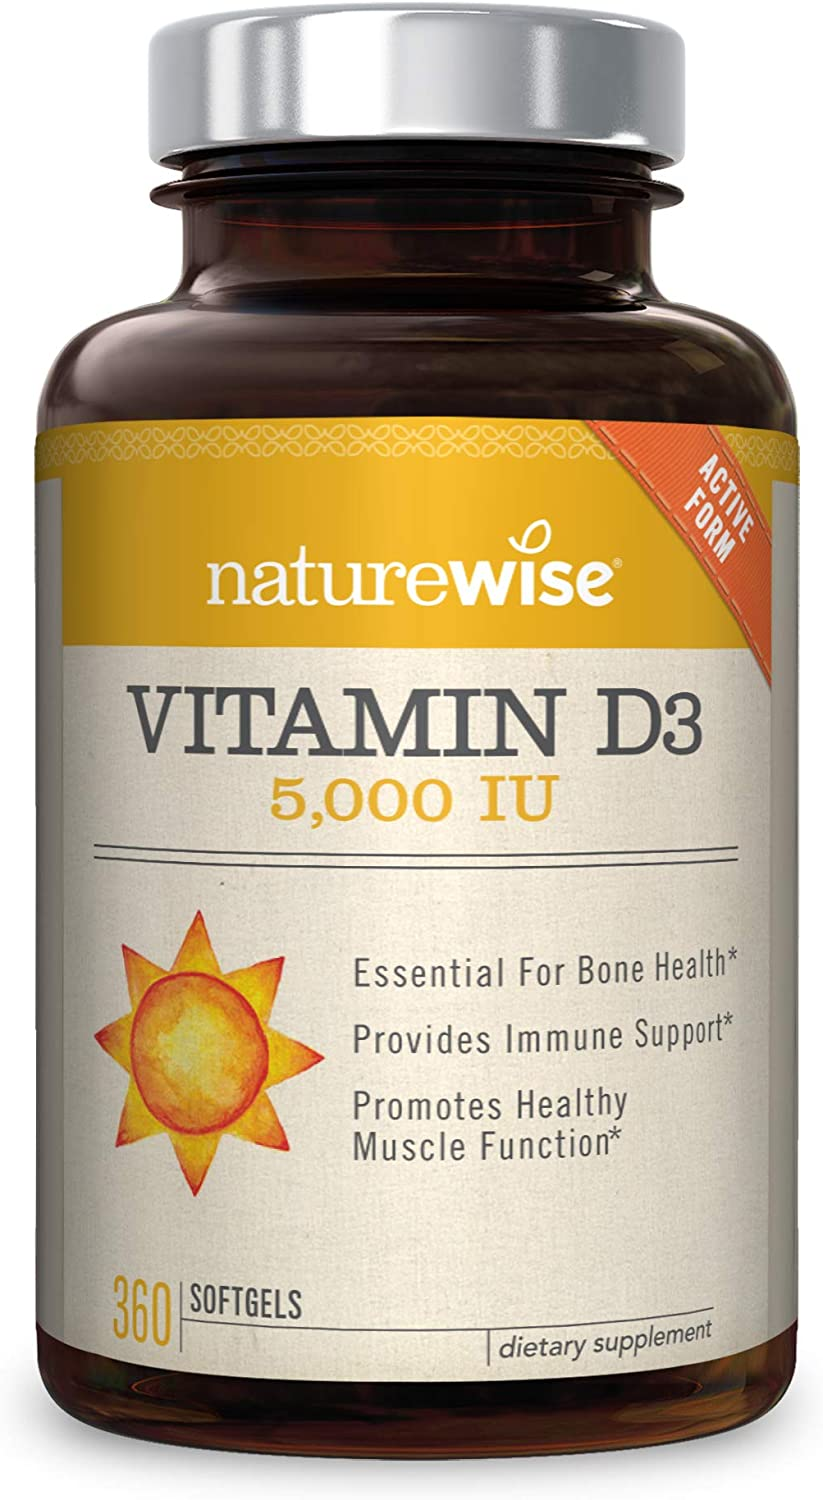 NatureWise Vitamin D3 5,000 IU (1 Year Supply) for Healthy Muscle Function, Bone Health, and Immune Support Non-GMO in Cold-Pressed Organic Olive Oil ...